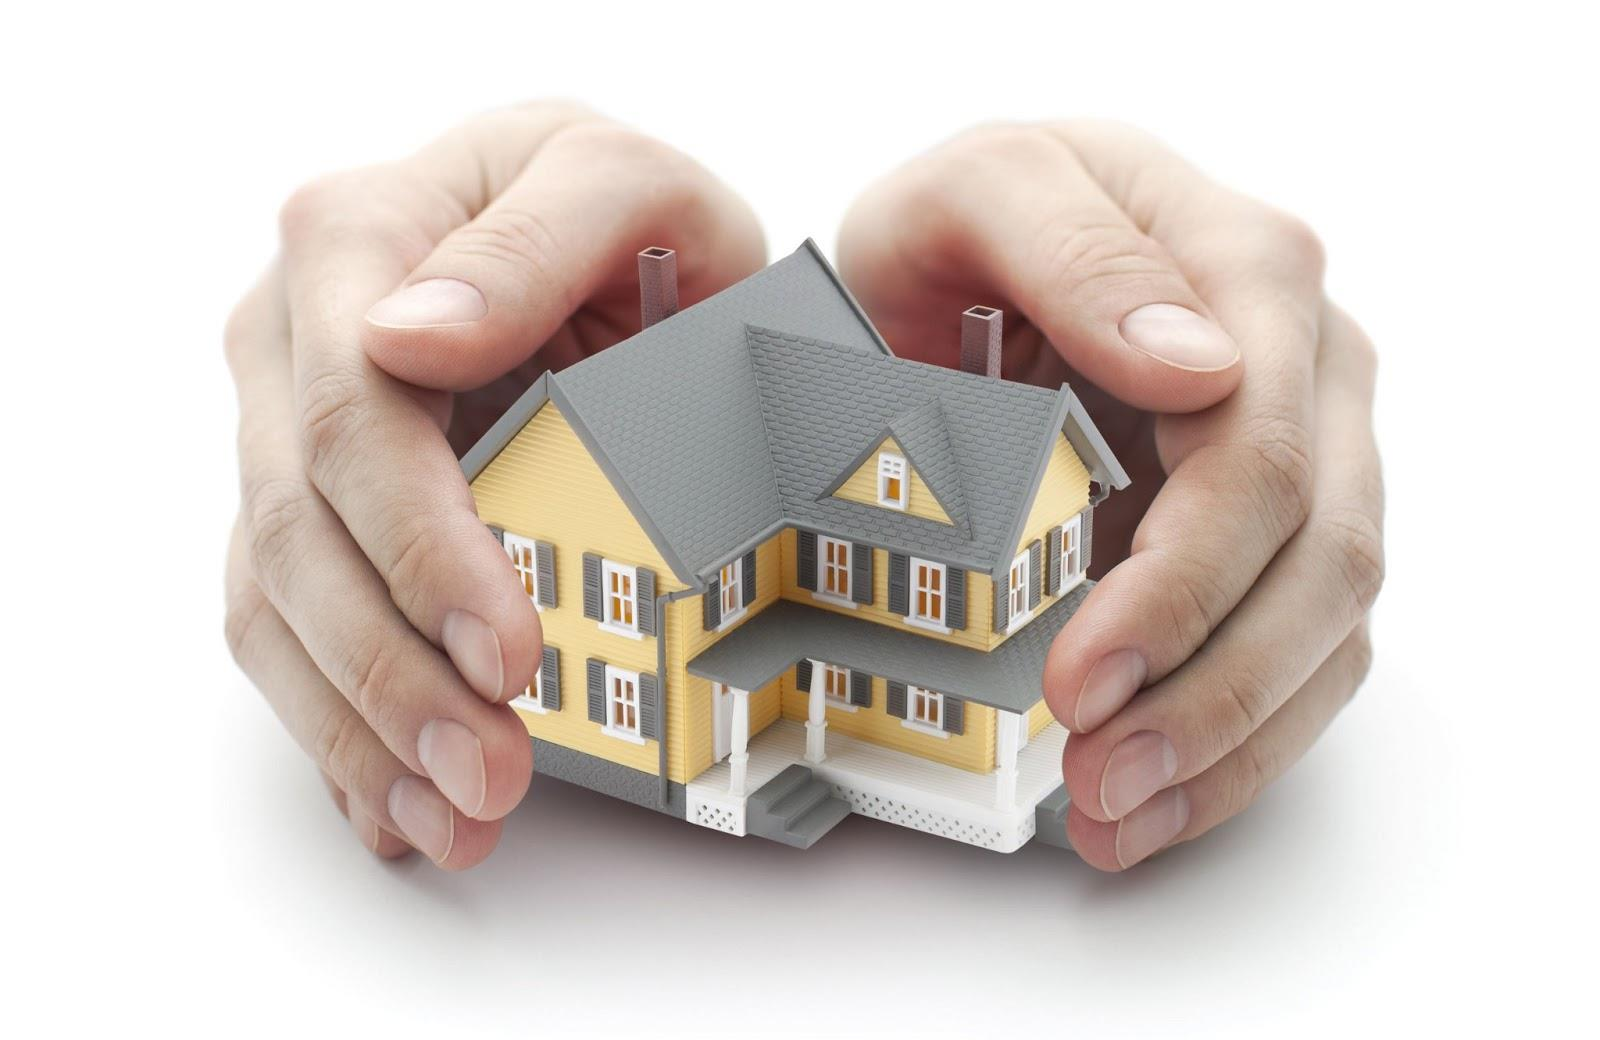 Property insurance is a policy that provides financial reimbursement to the owner or renter